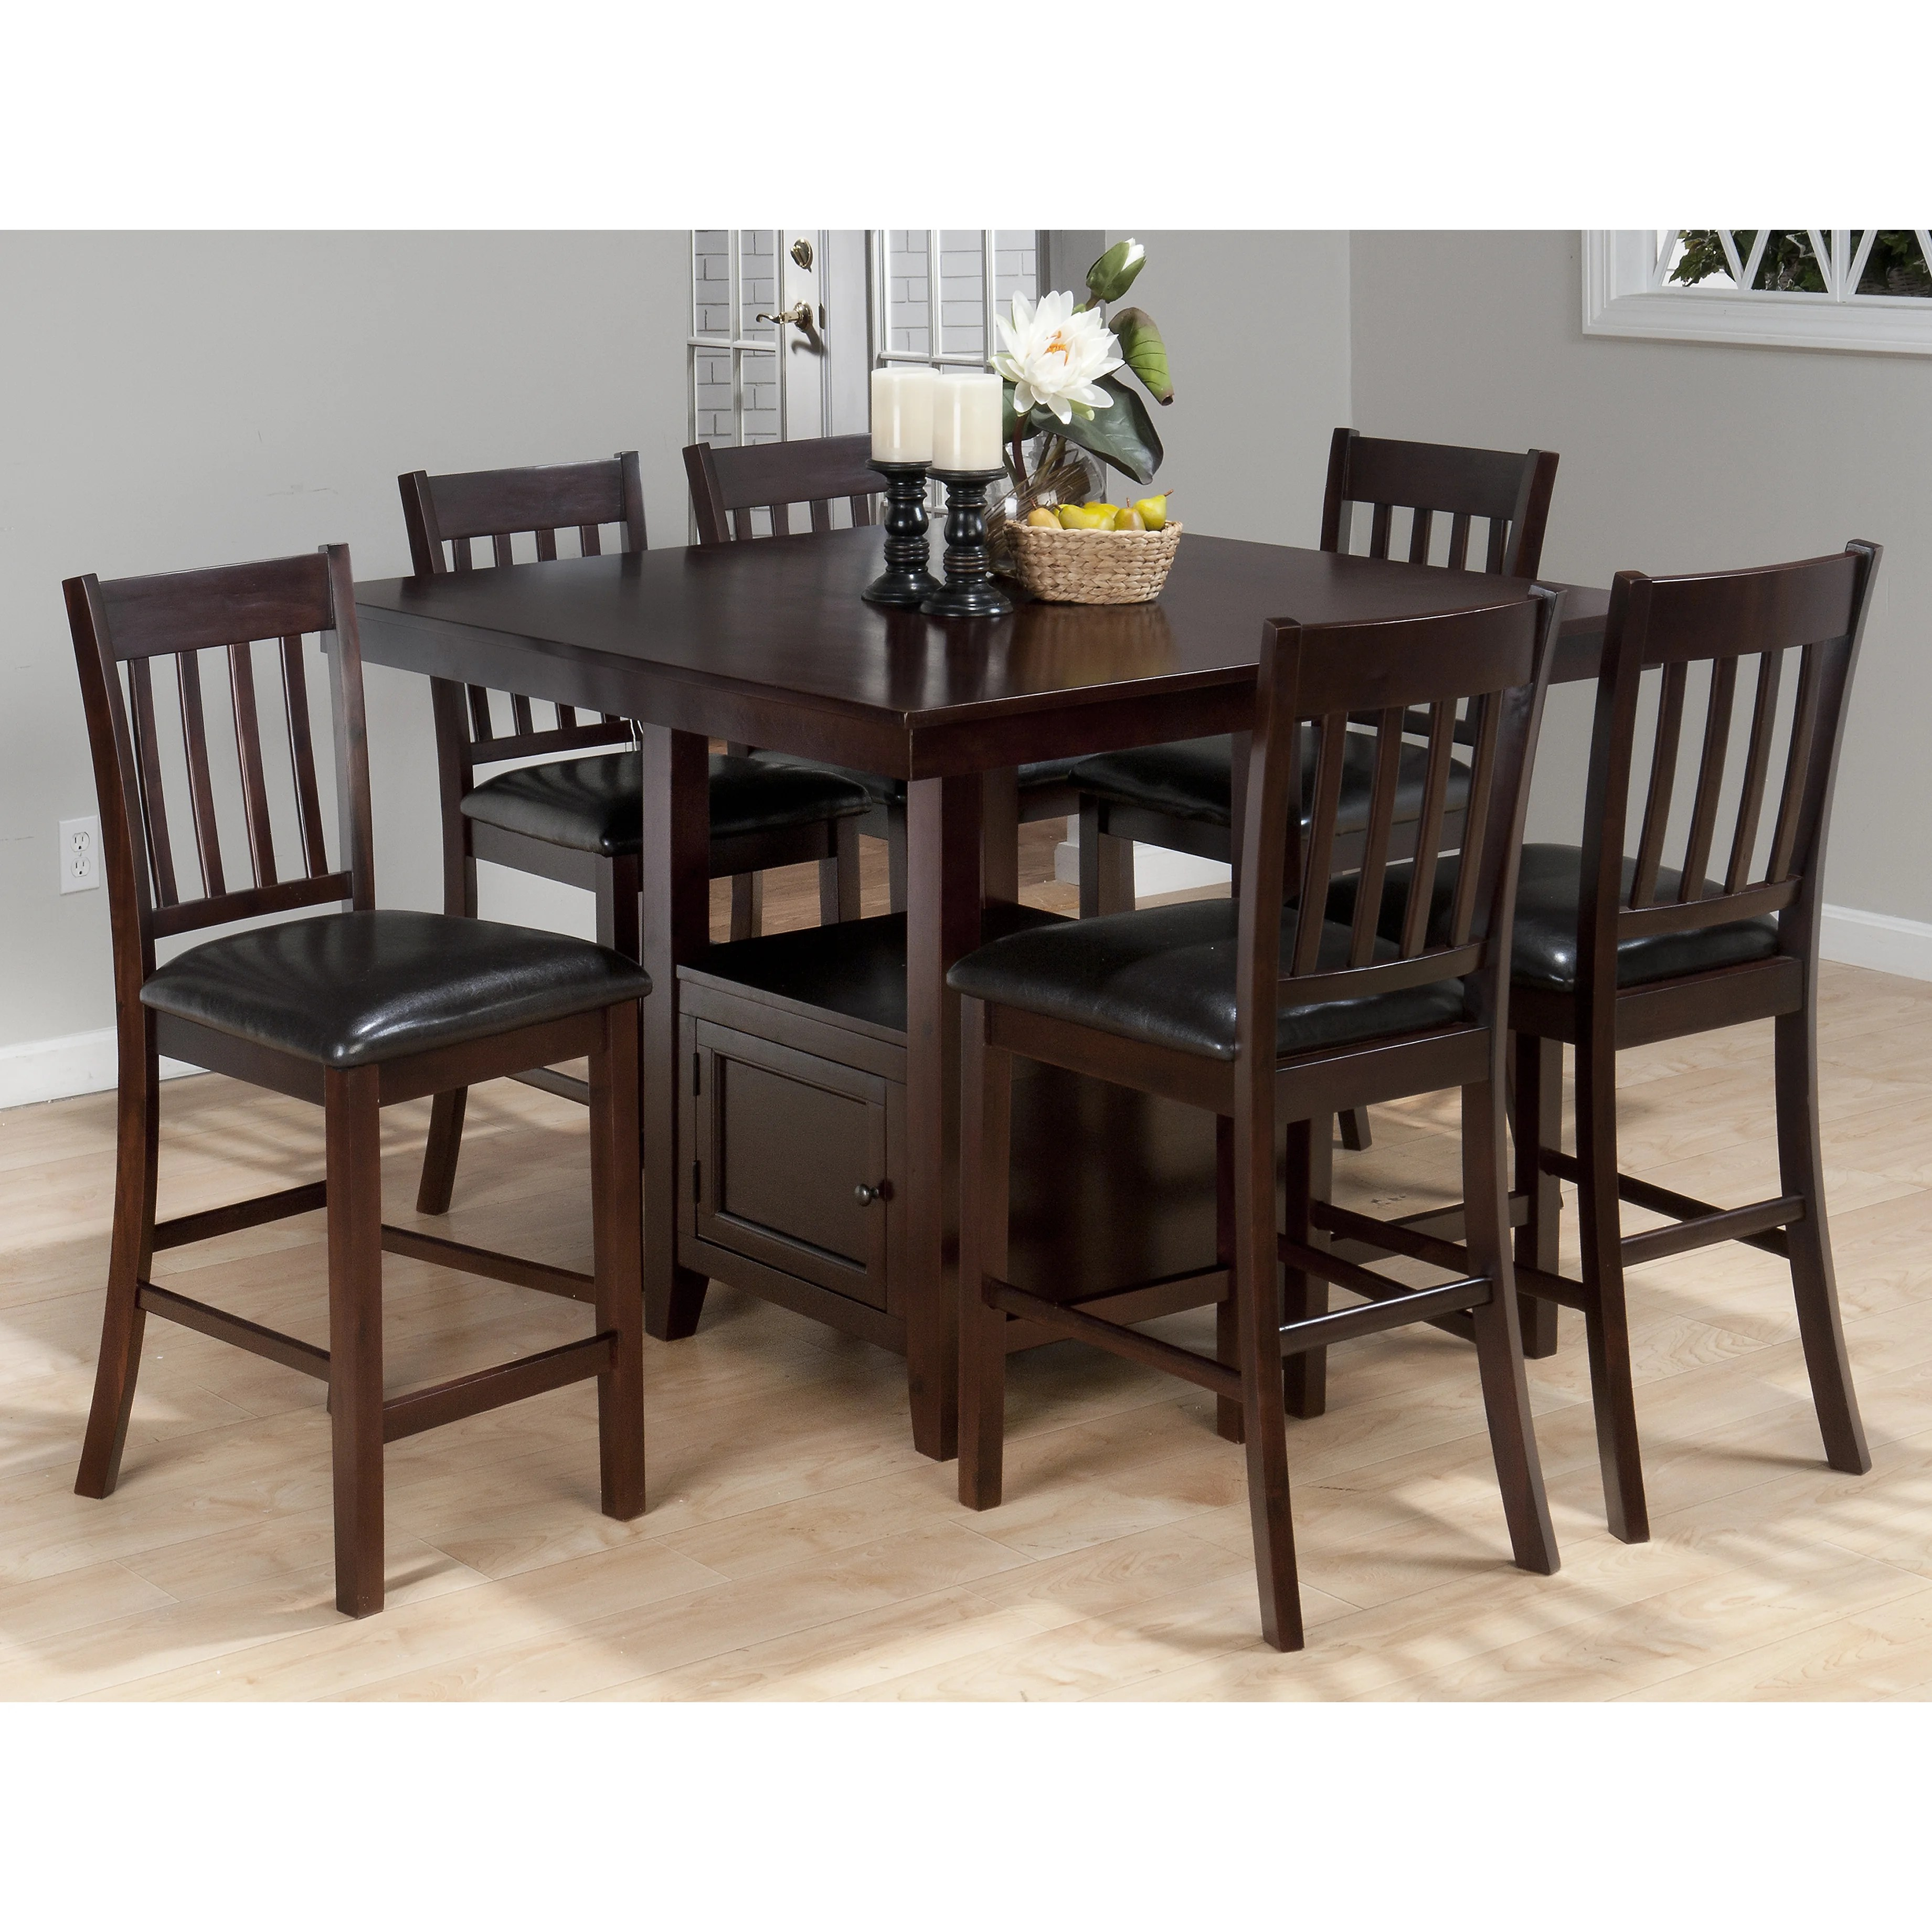 Kitchen table yourtruevalue counter height kitchen tables tryde counter height kitchen table - Counter kitchen table ...